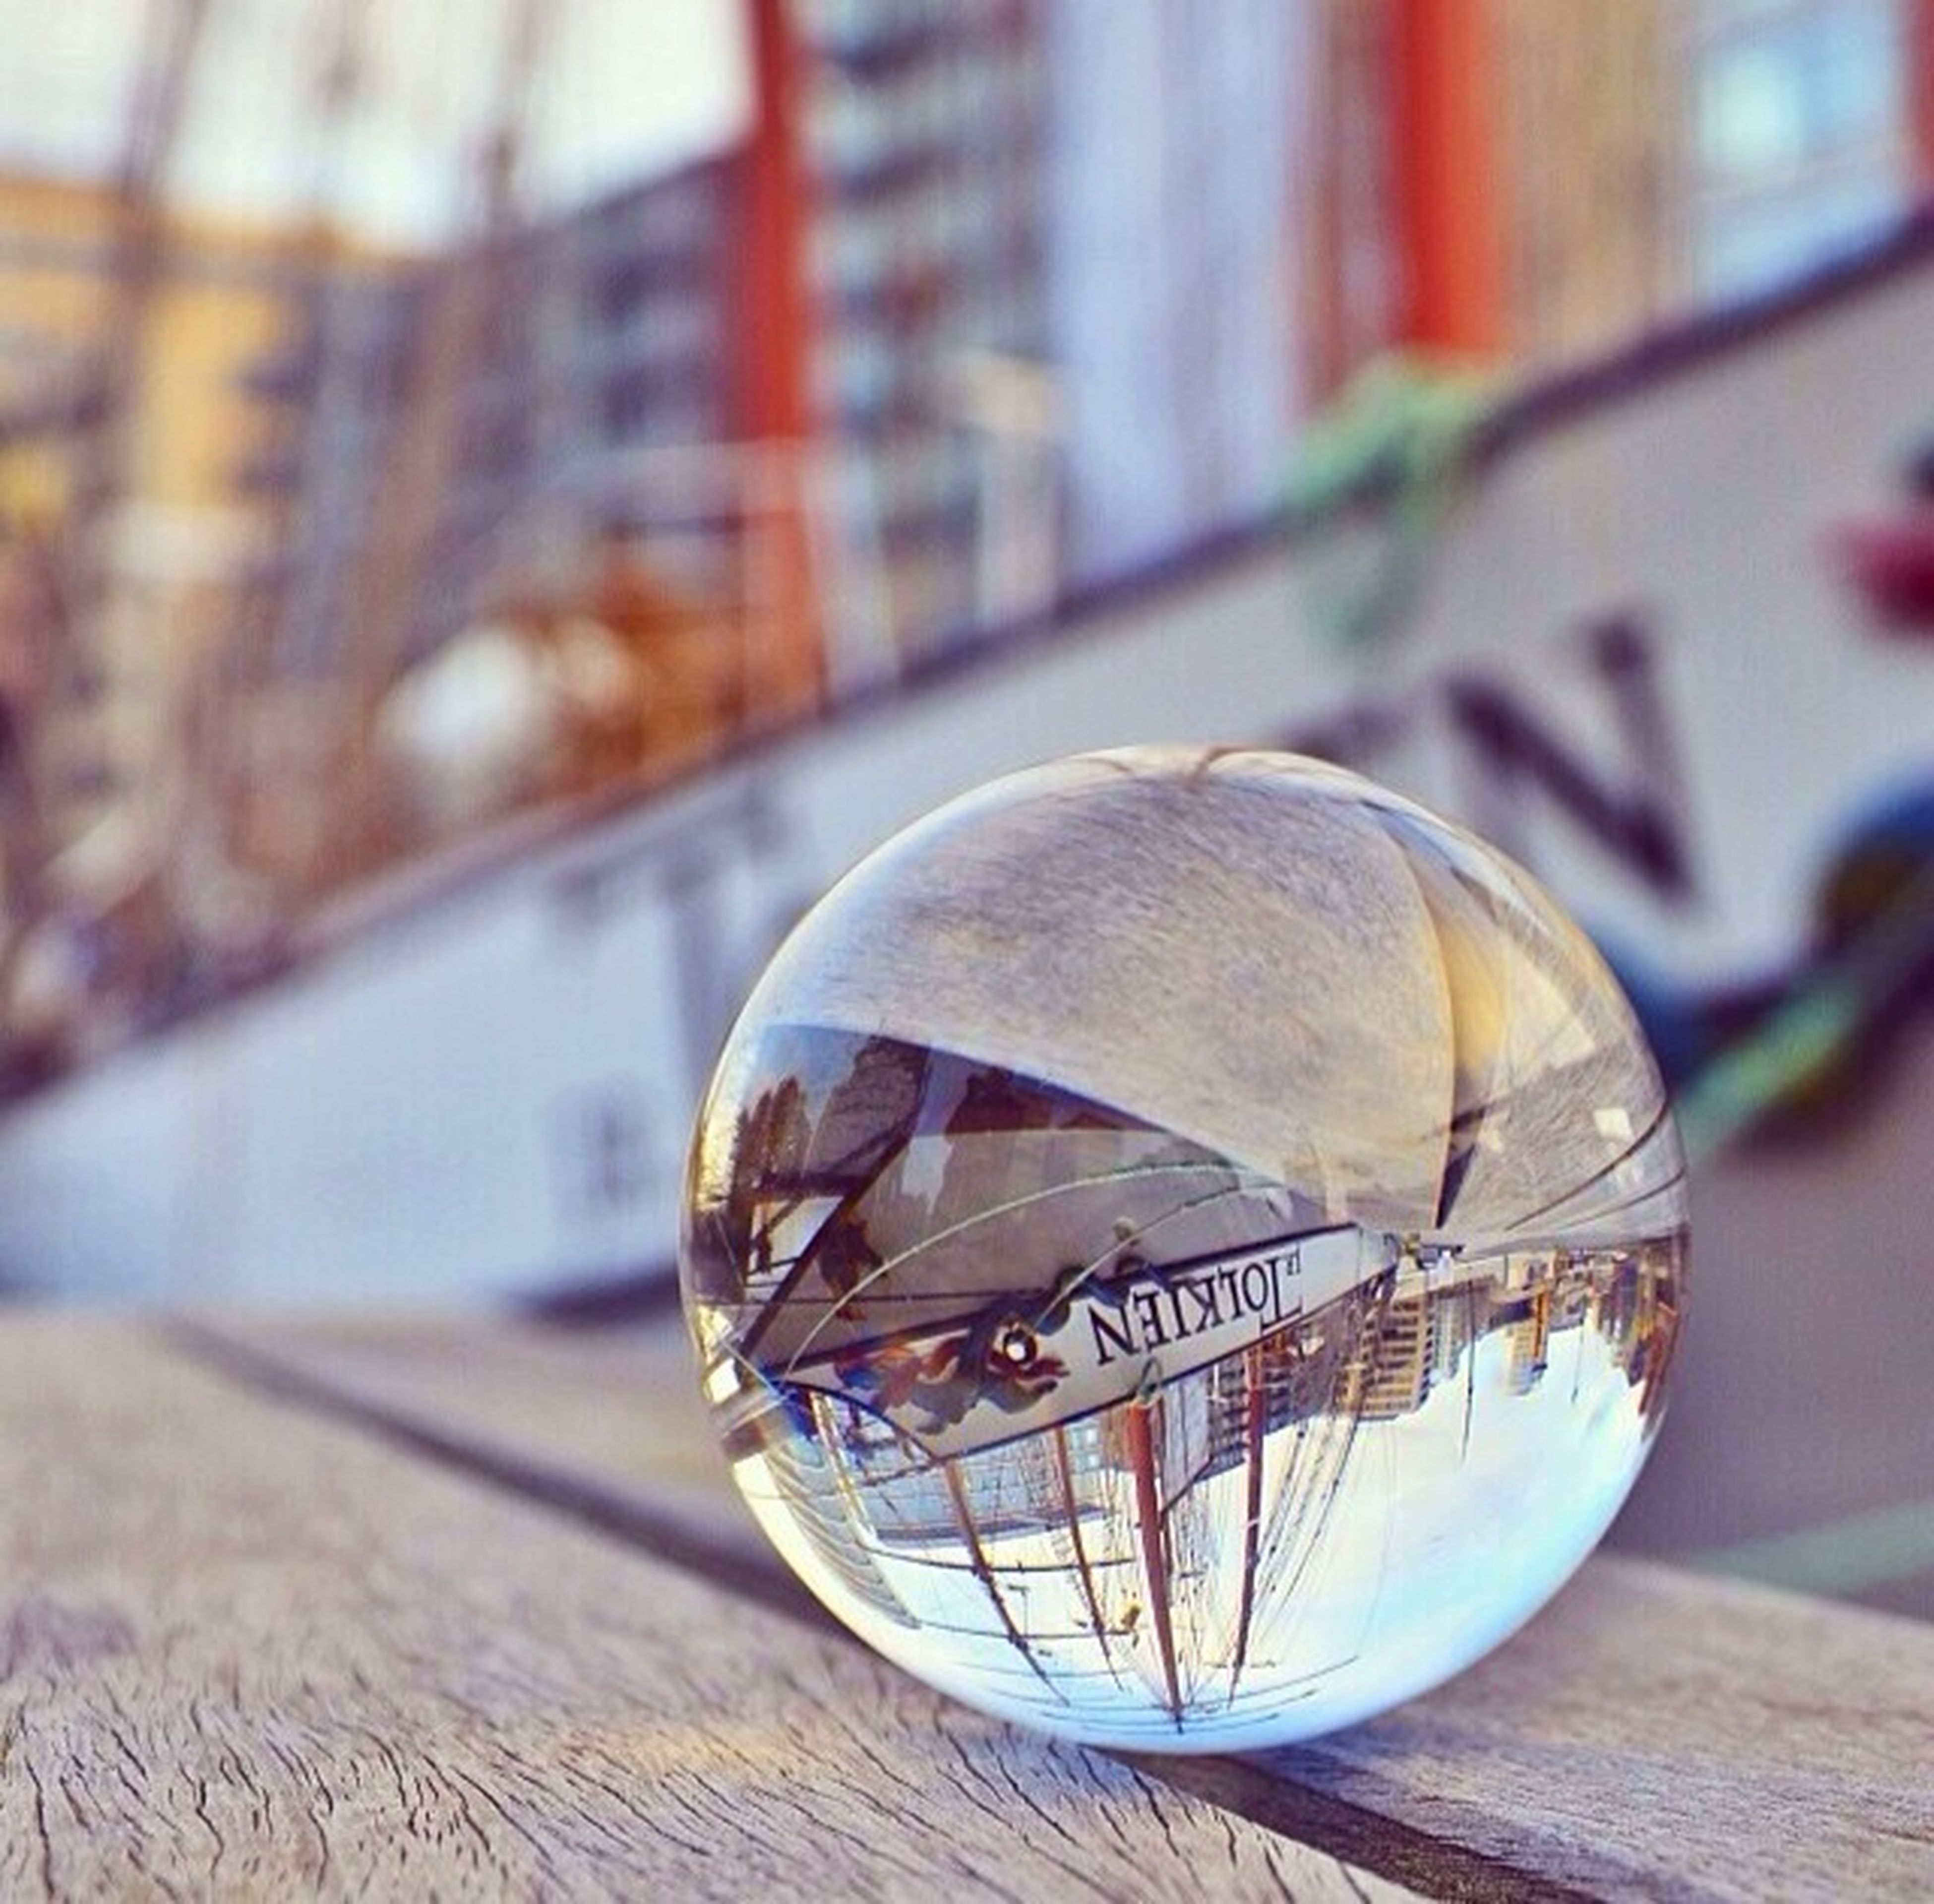 focus on foreground, table, close-up, still life, indoors, glass - material, selective focus, transparent, no people, day, text, single object, reflection, sphere, western script, communication, decoration, wood - material, wooden